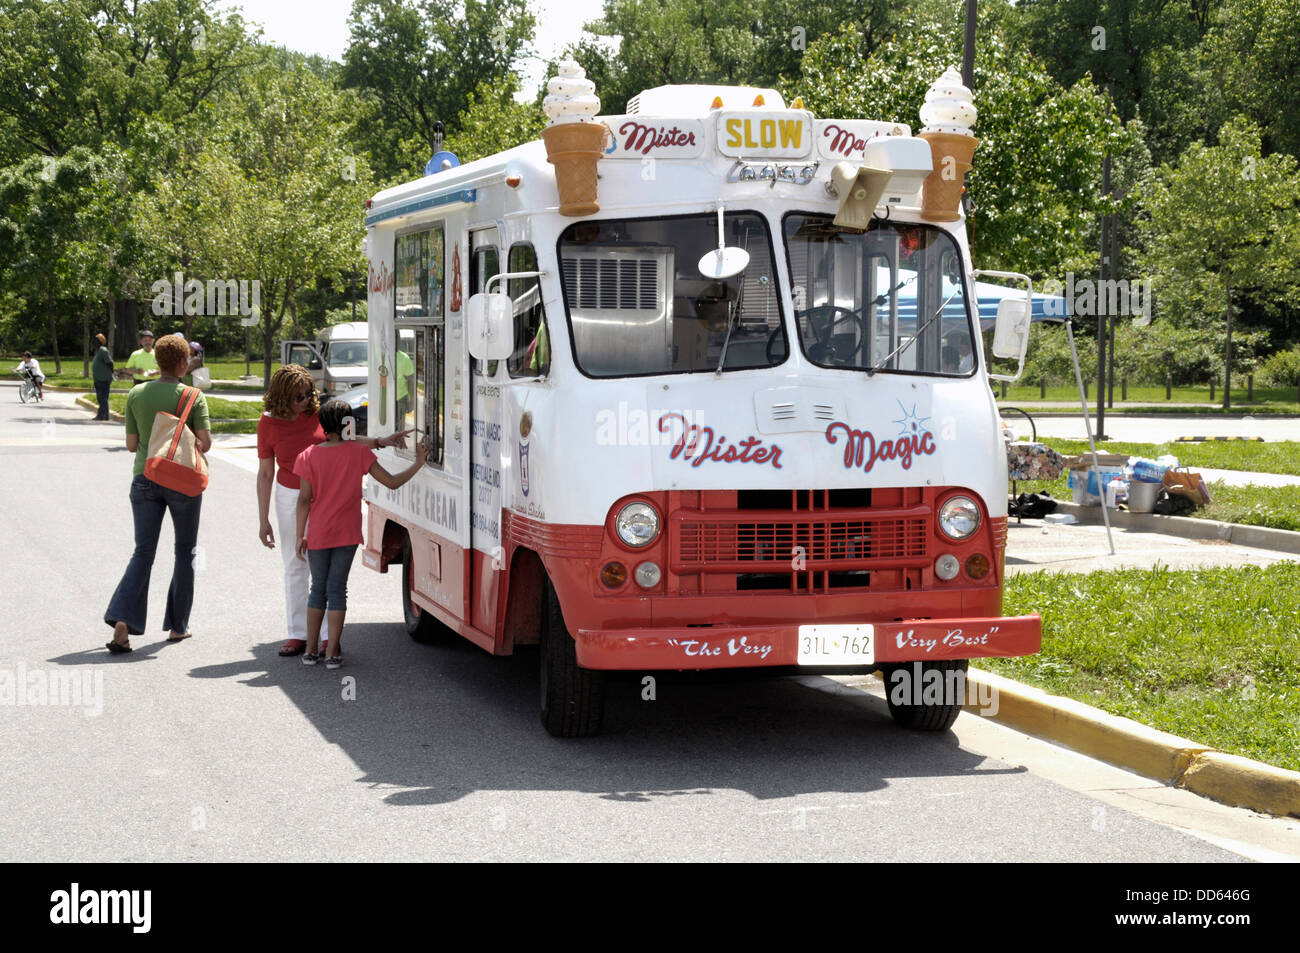 A Mister Magic ice cream truck selling ice cream in Landover, Maryland - Stock Image